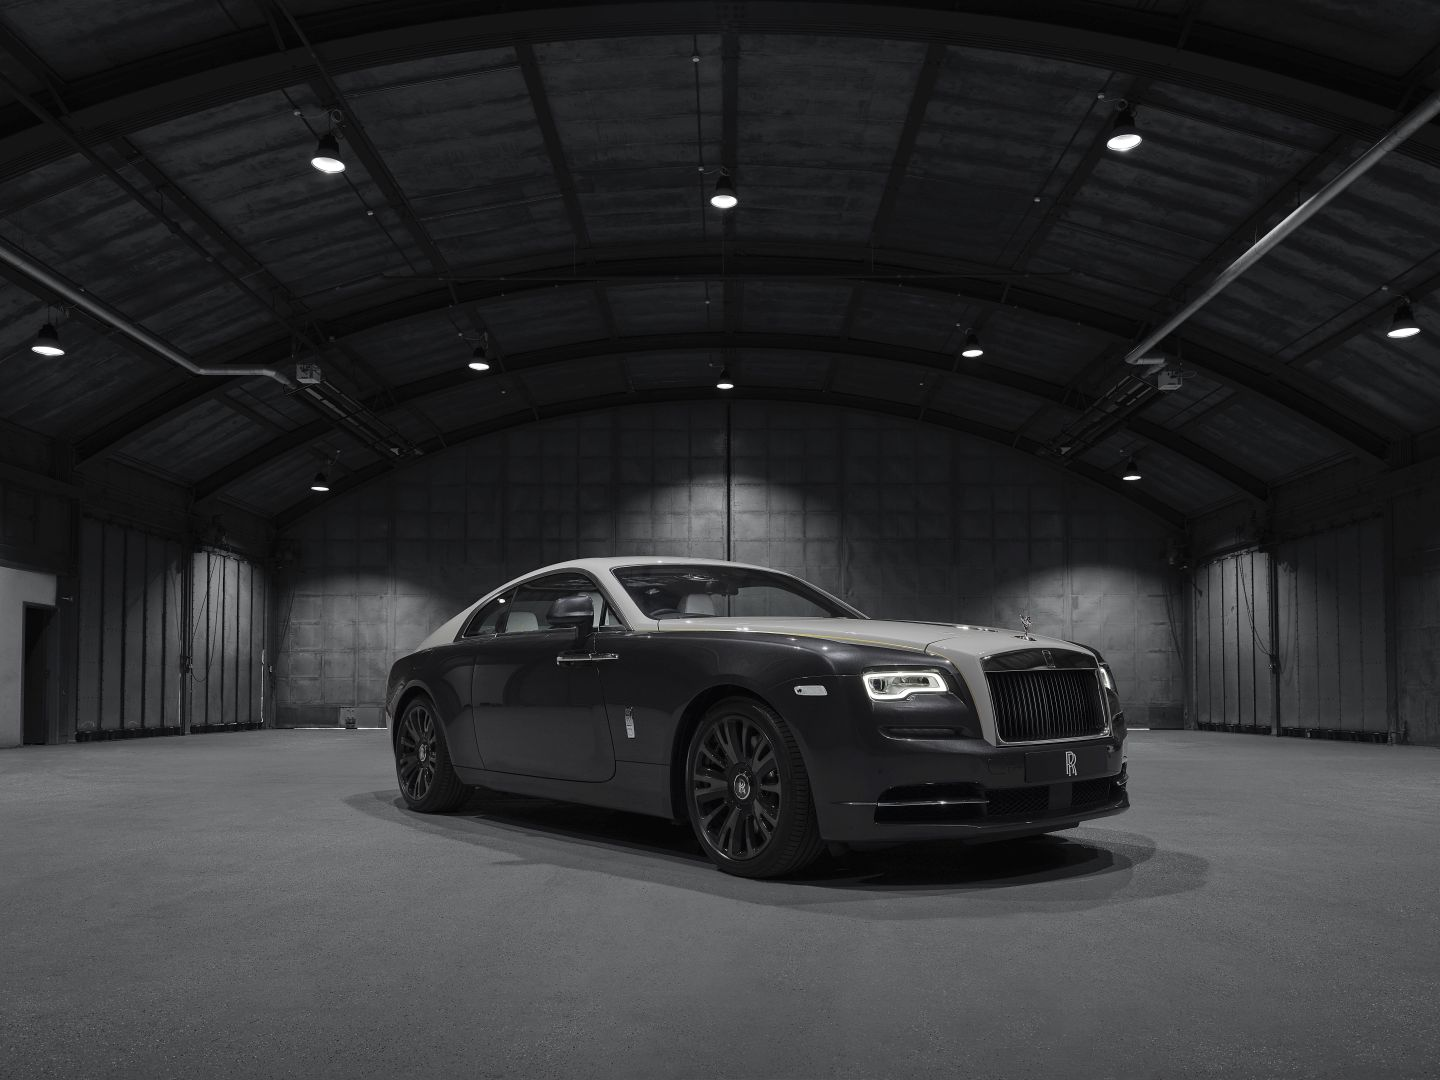 Rolls-Royce Unveils Wraith Eagle VIII Collection Ahead of Villa d'Este